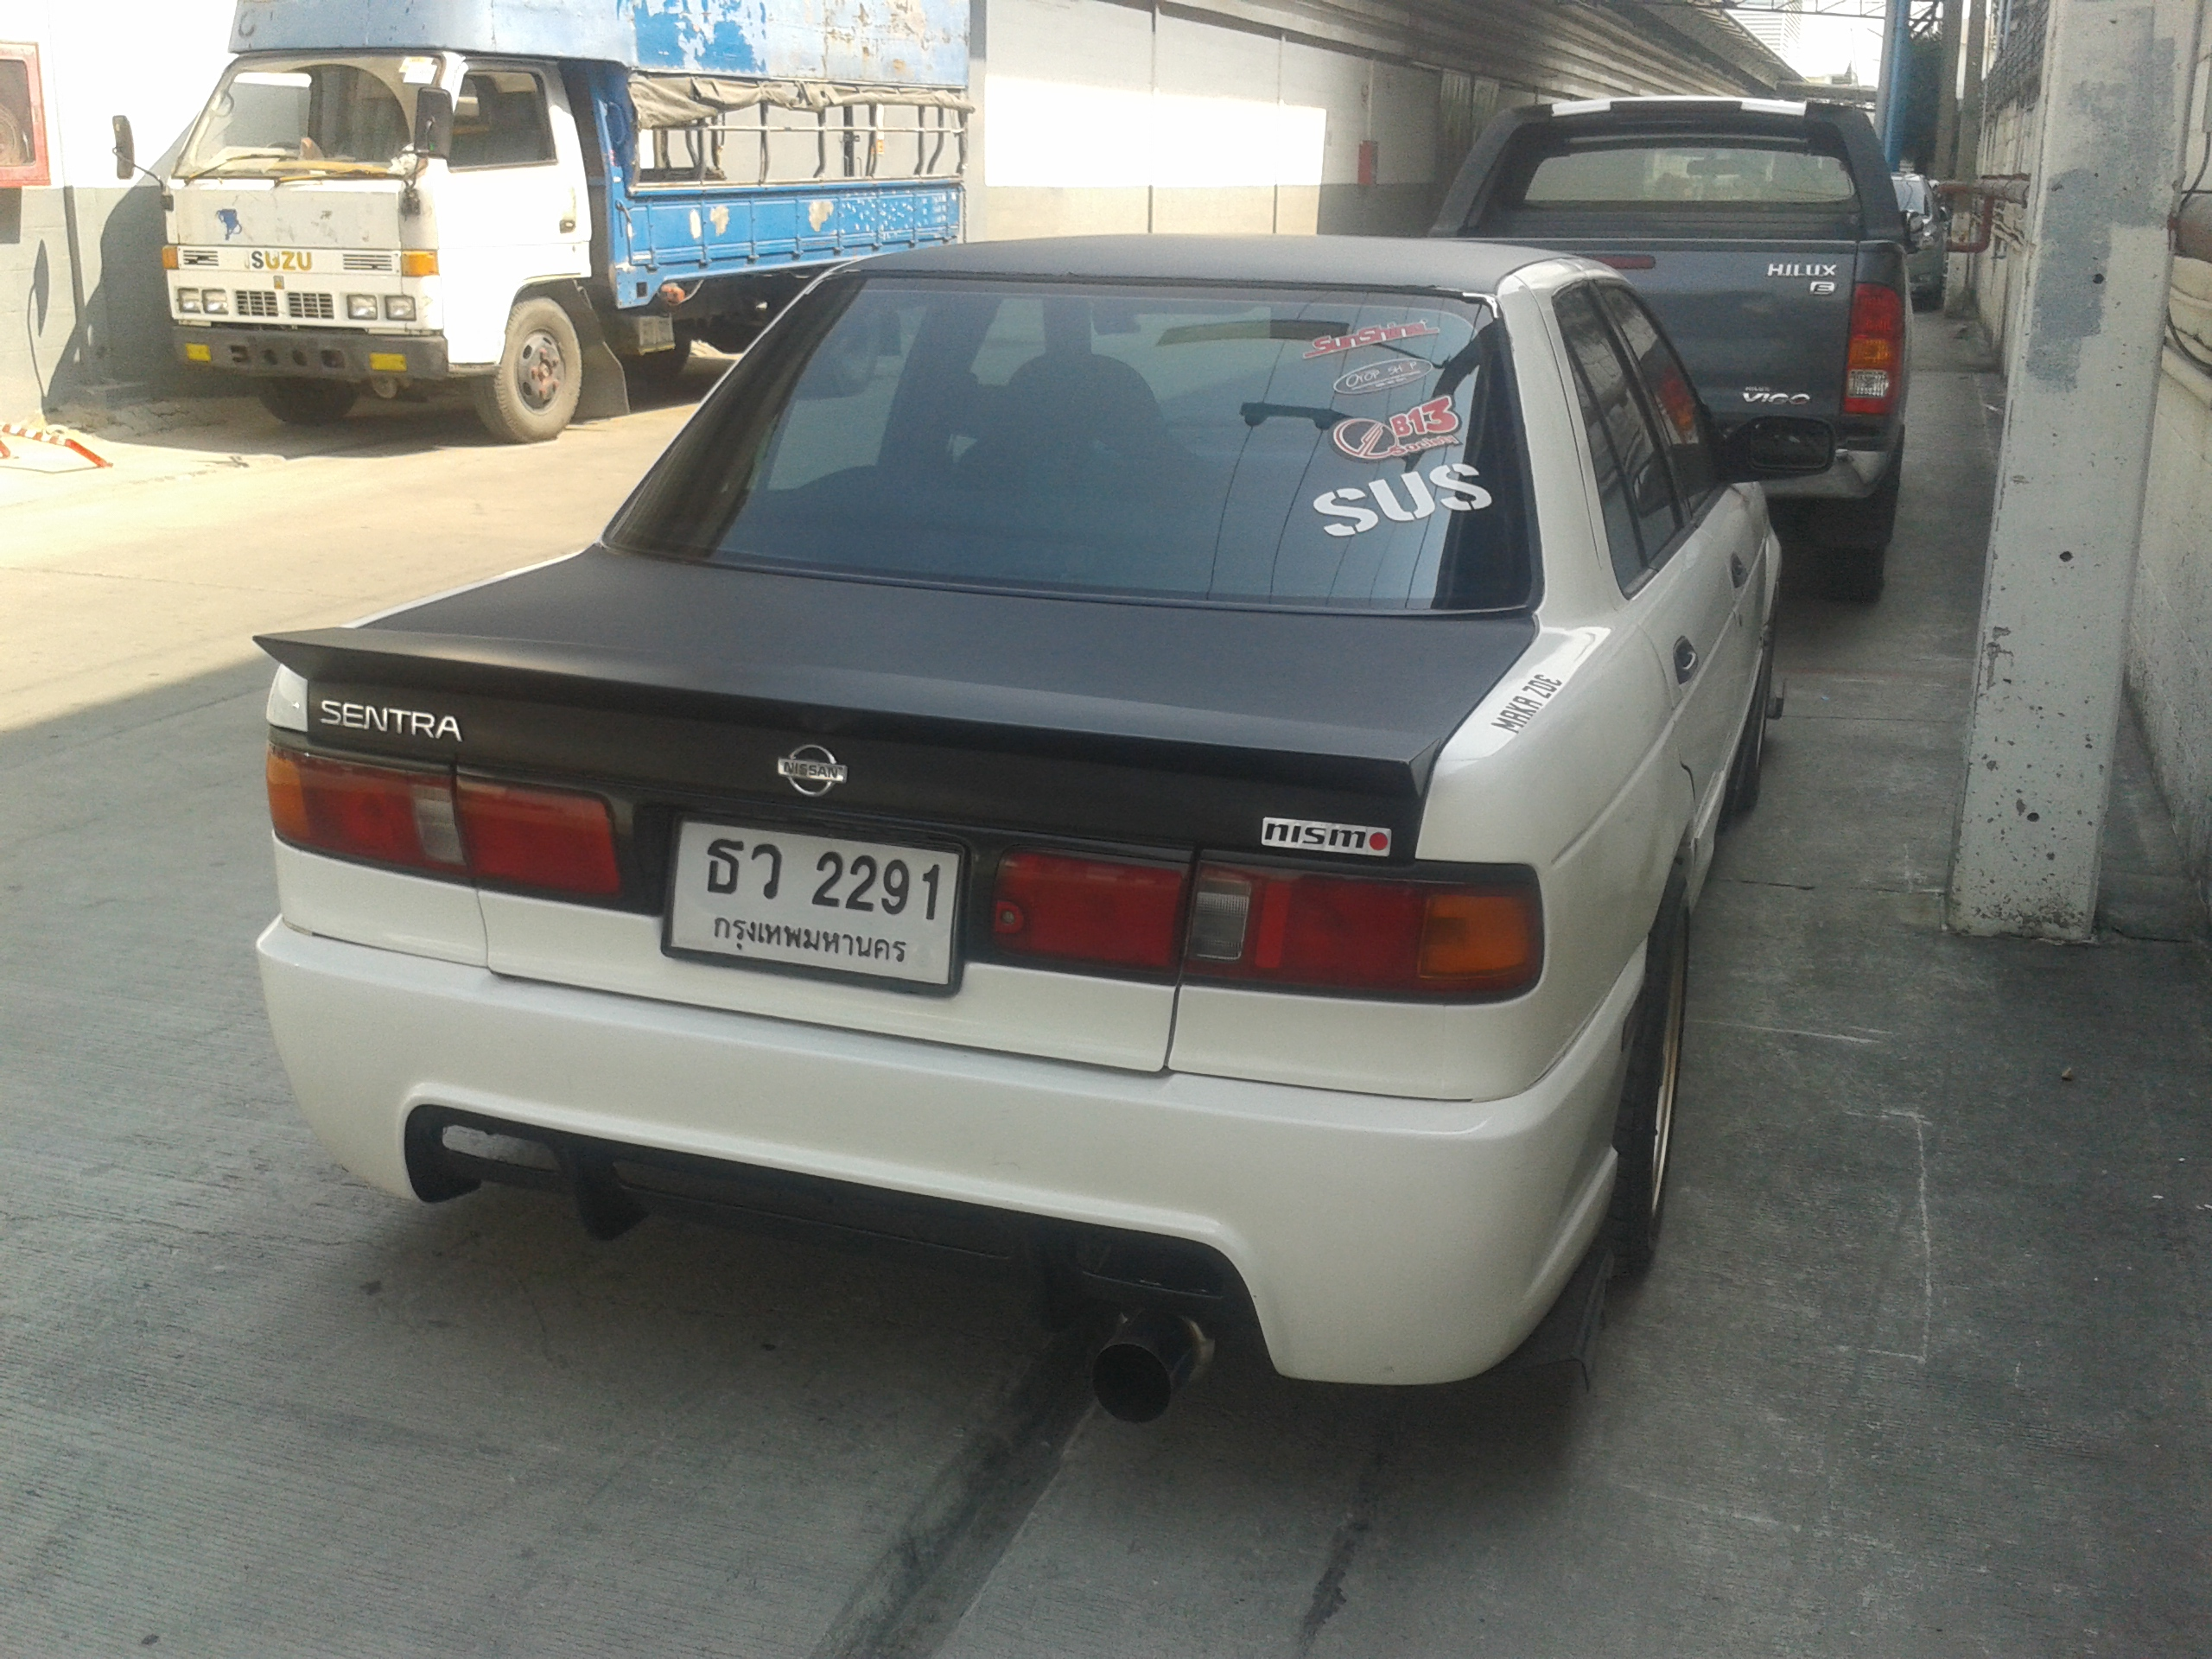 File:Tuned Nissan Sentra (B13) in Thailand 07 jpg - Wikimedia Commons